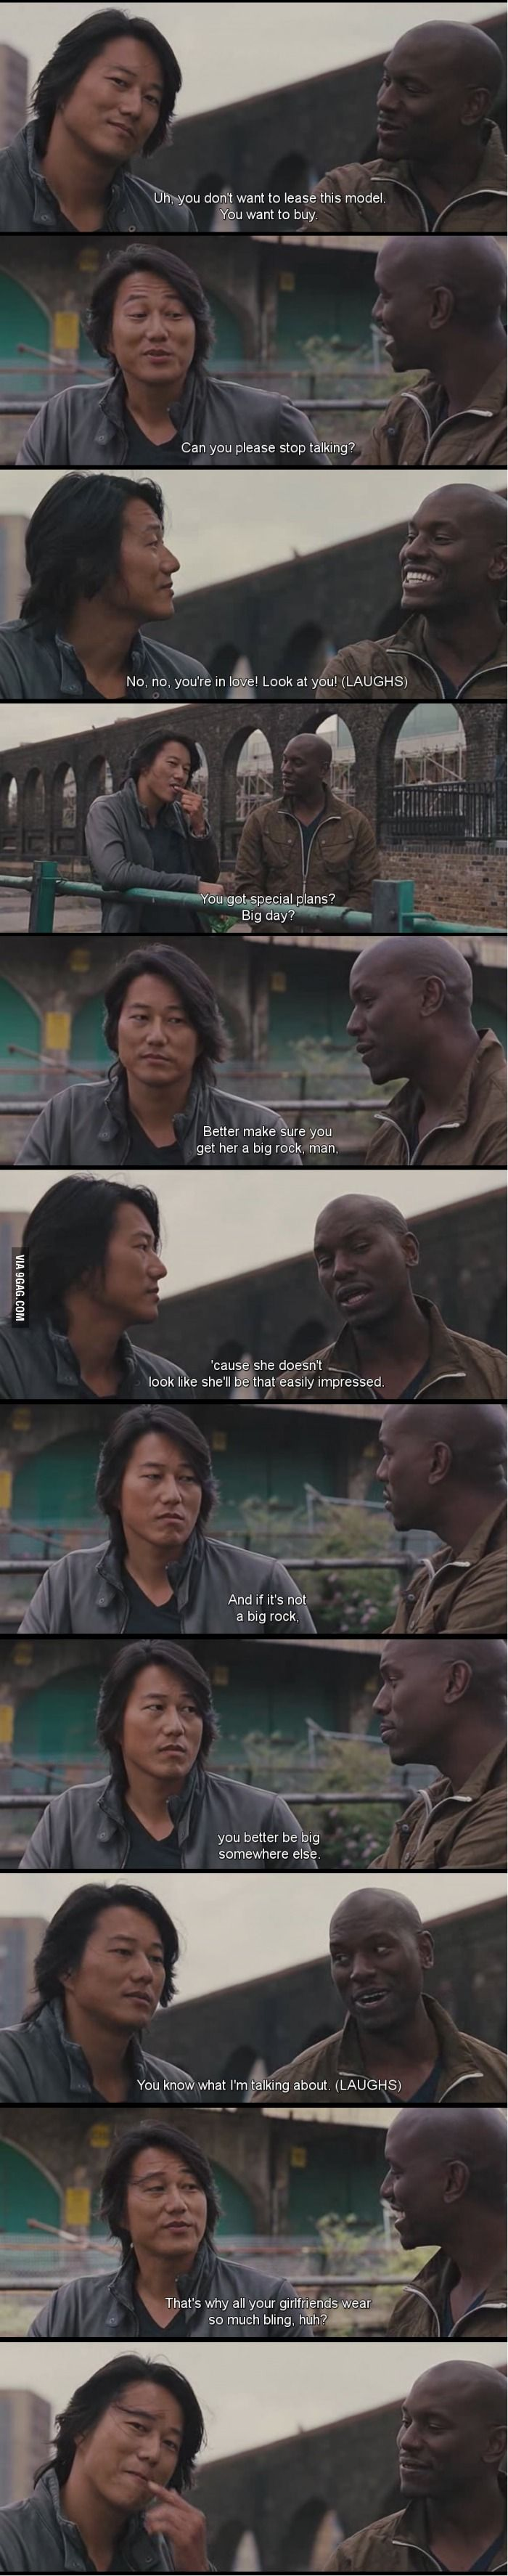 Fast and Furious. love this movie! I about died laughing at this part! Roman just cracks me up!